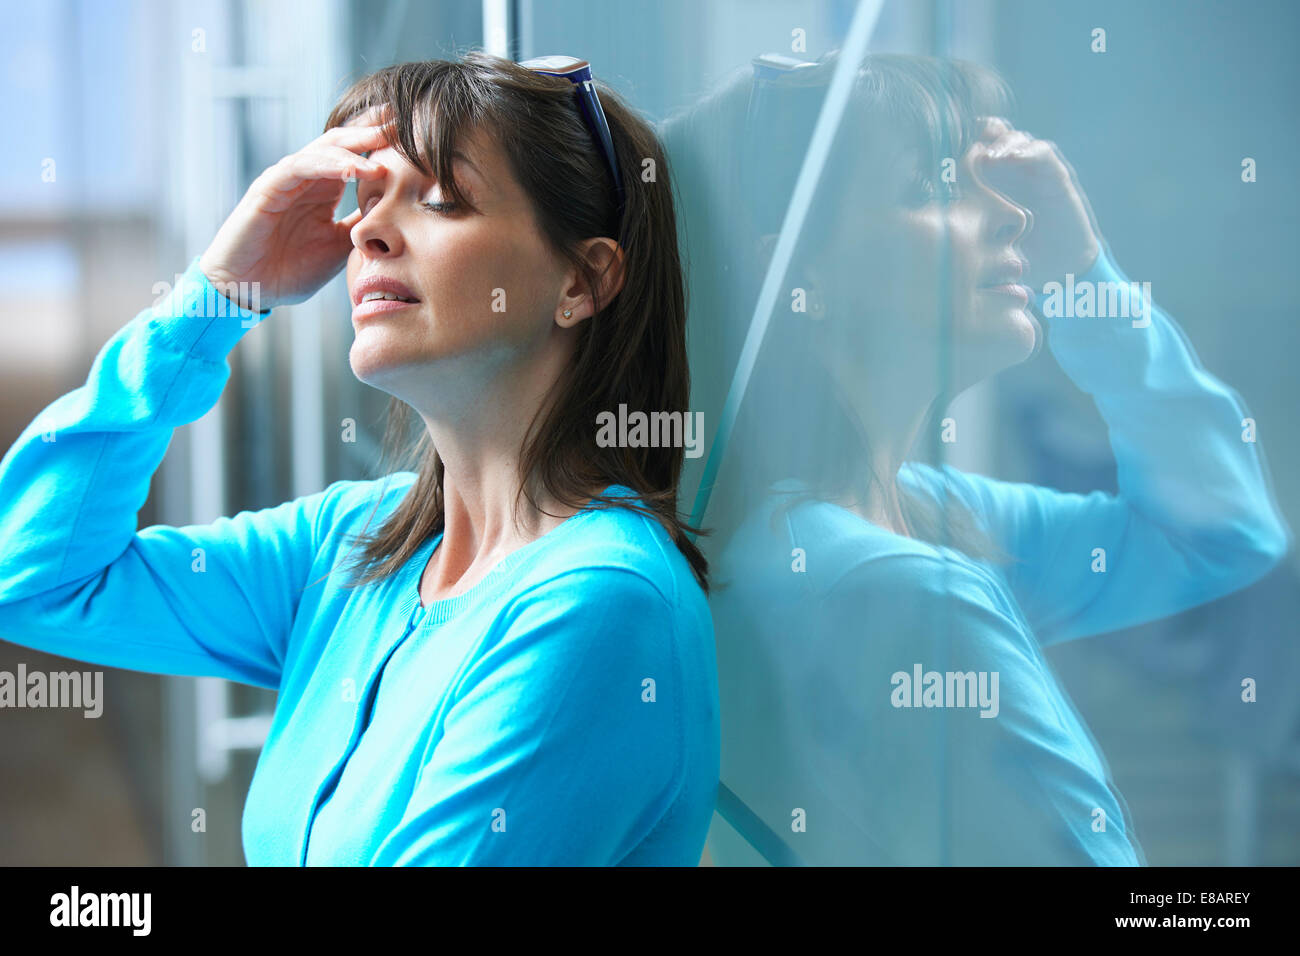 Mature businesswoman leaning against glass wall in office with hand on face Photo Stock